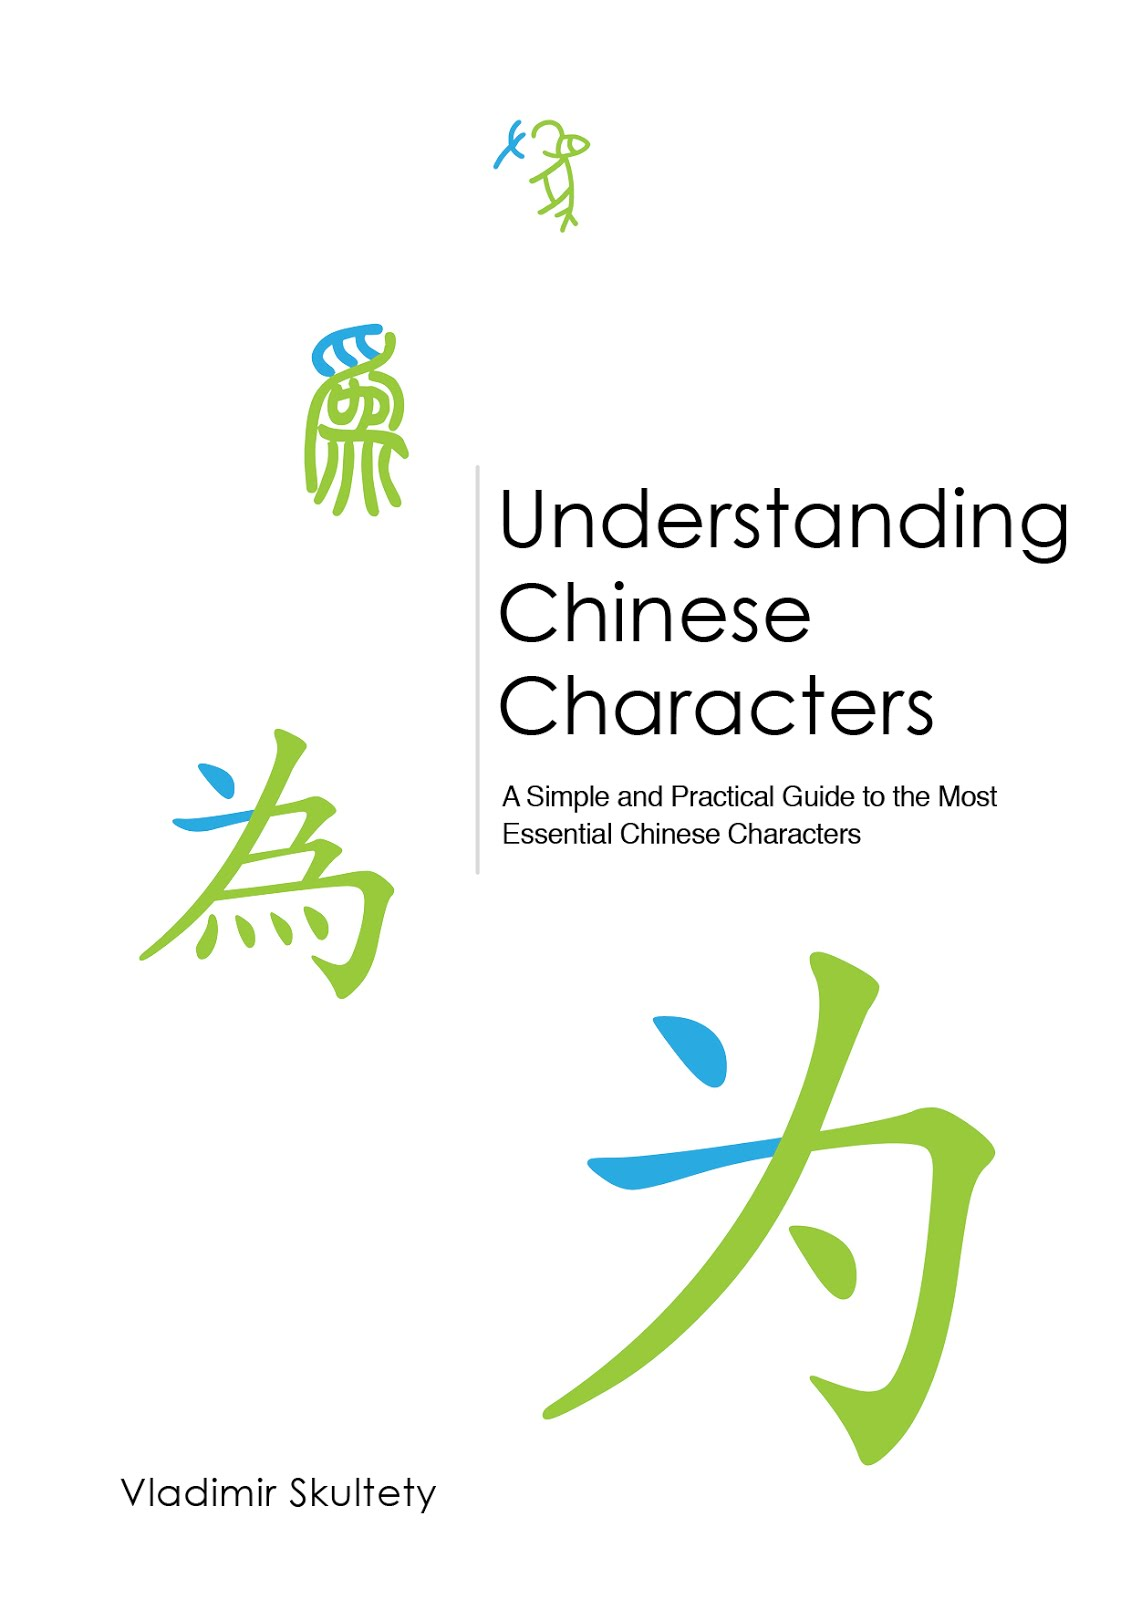 My book about Chinese Characters